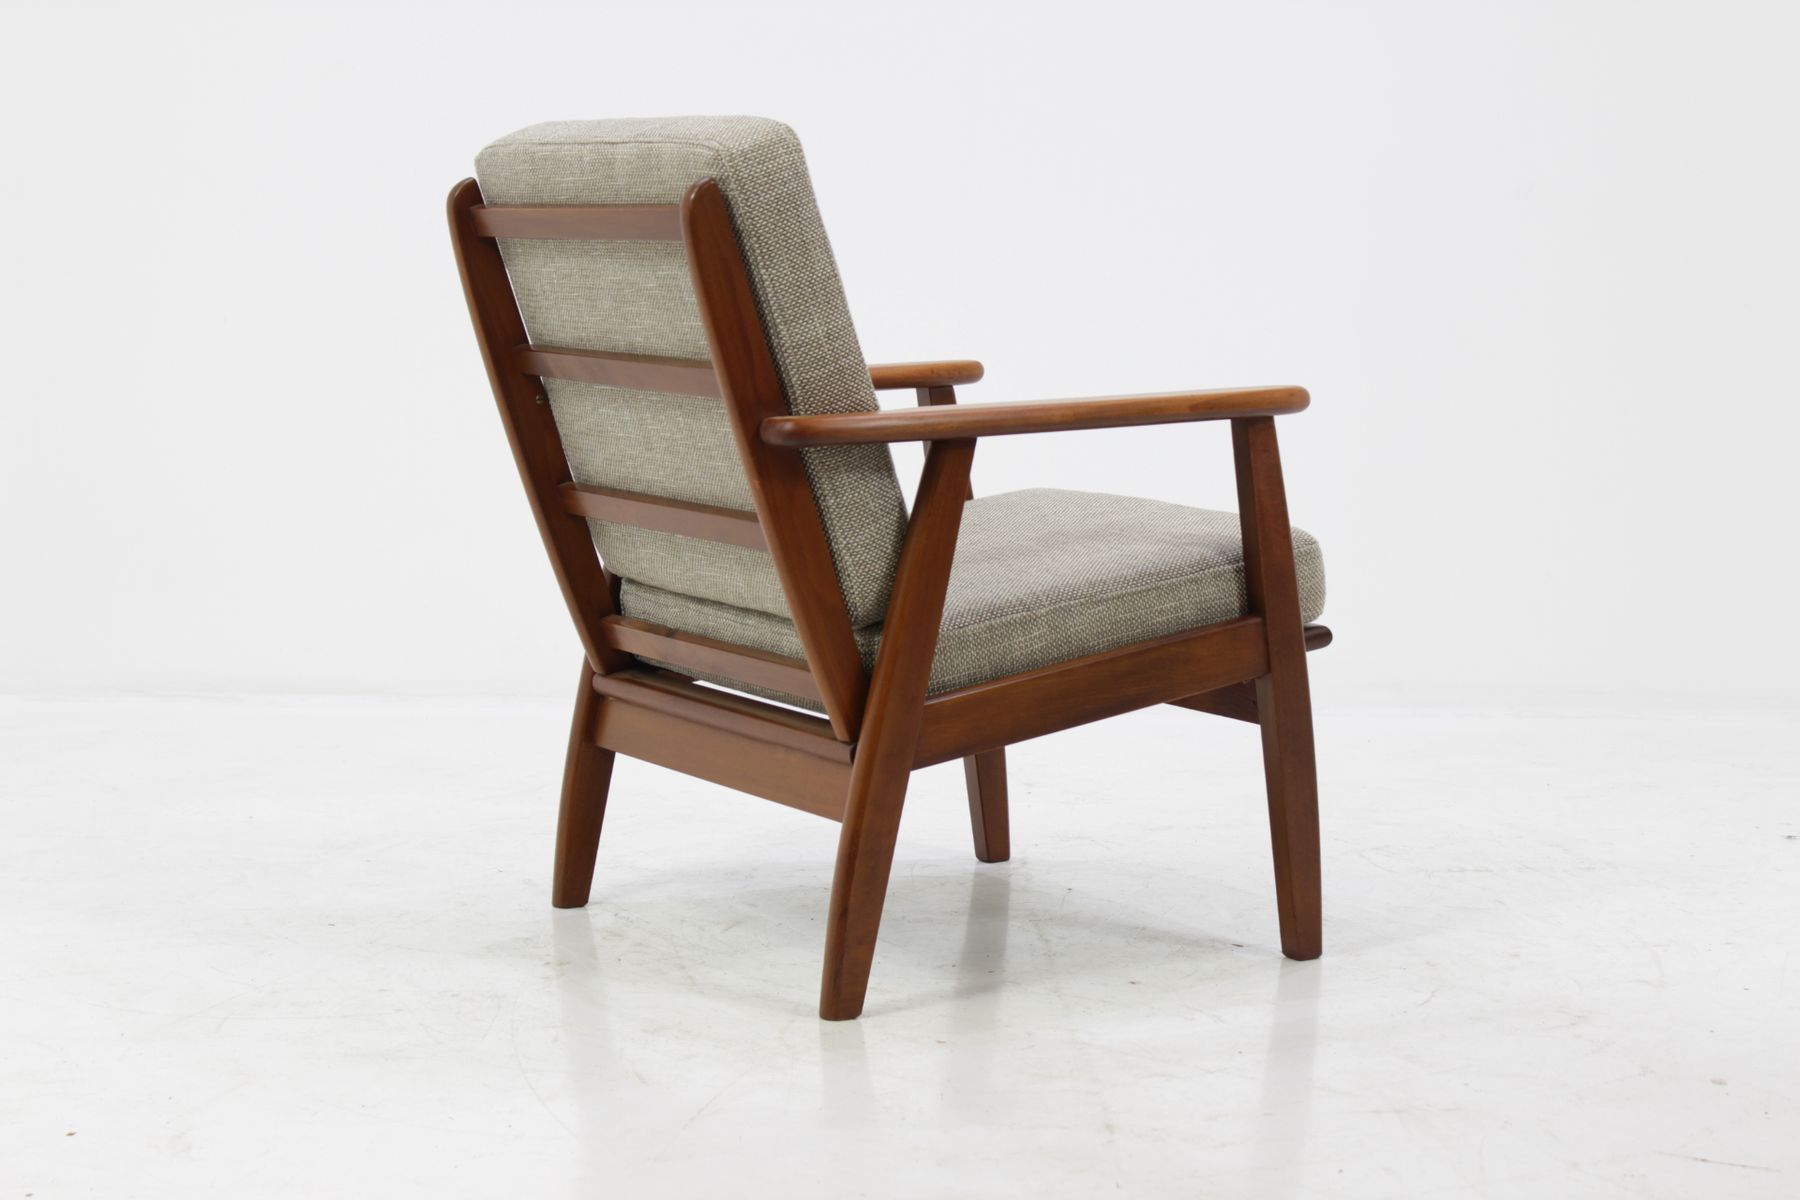 Danish Teak Easy Chair in Grey 1960s for sale at Pamono